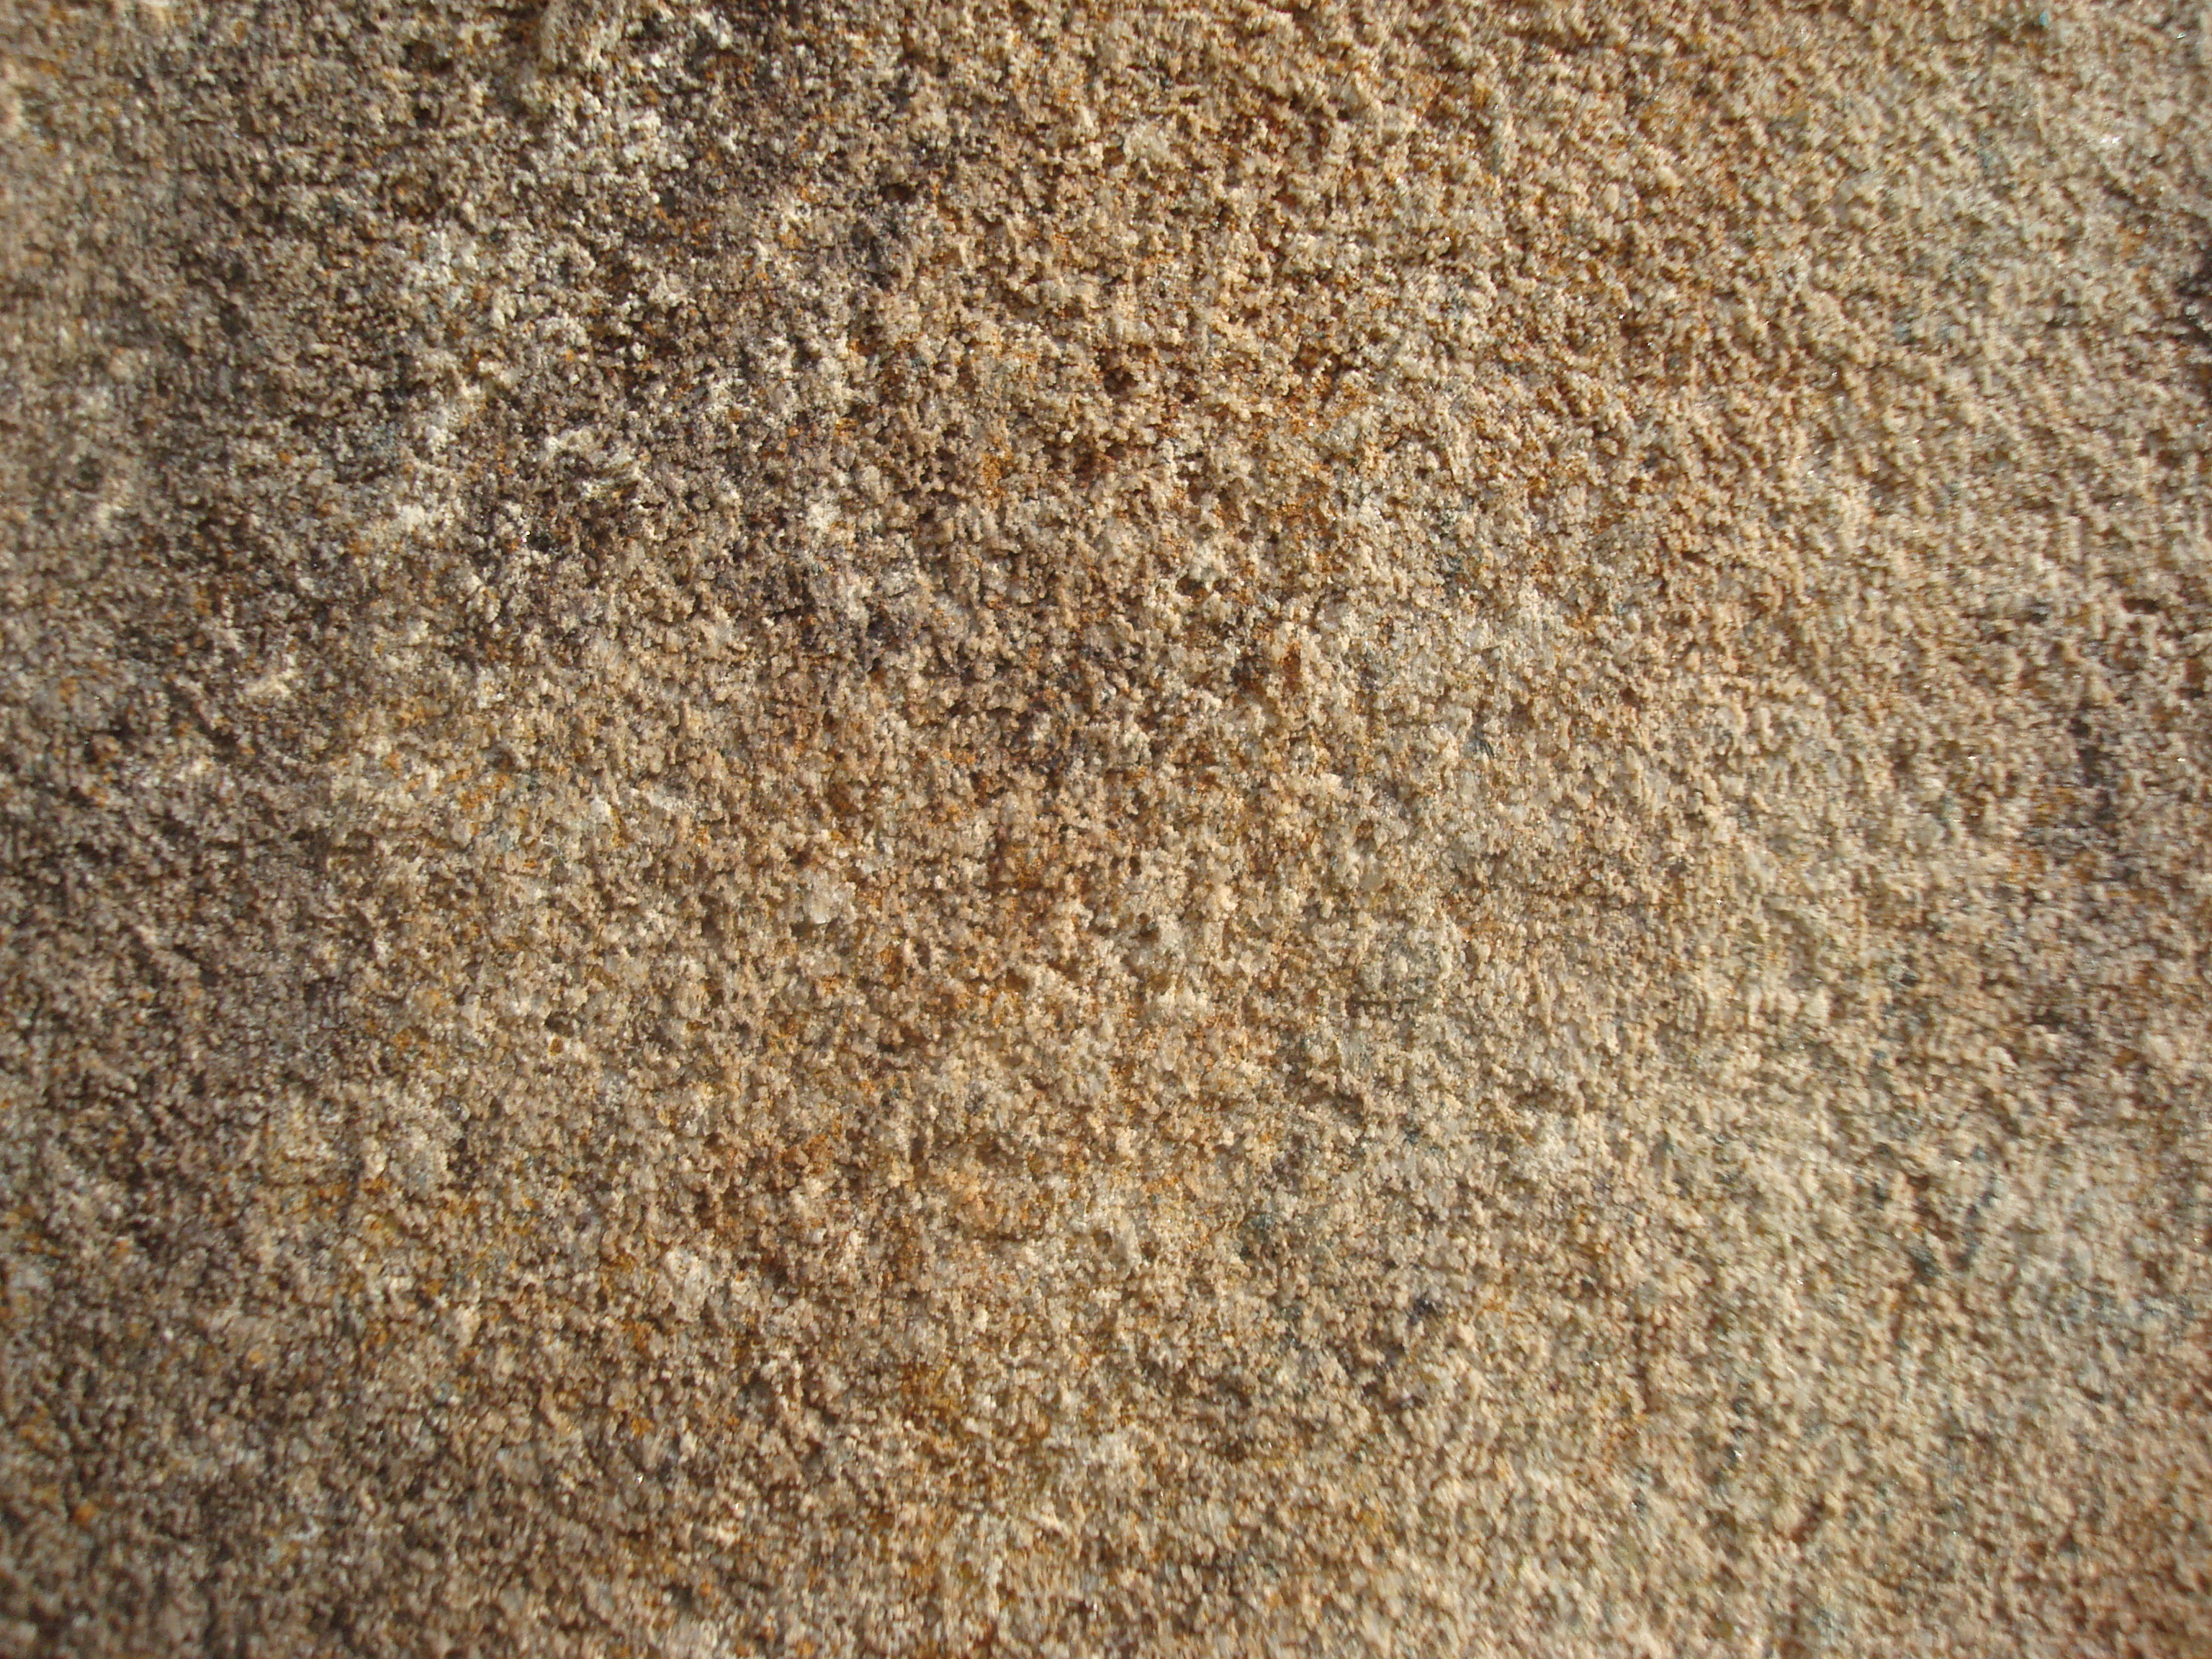 Brown concrete wall texture, Texture, Textured, Wall, Stone, HQ Photo